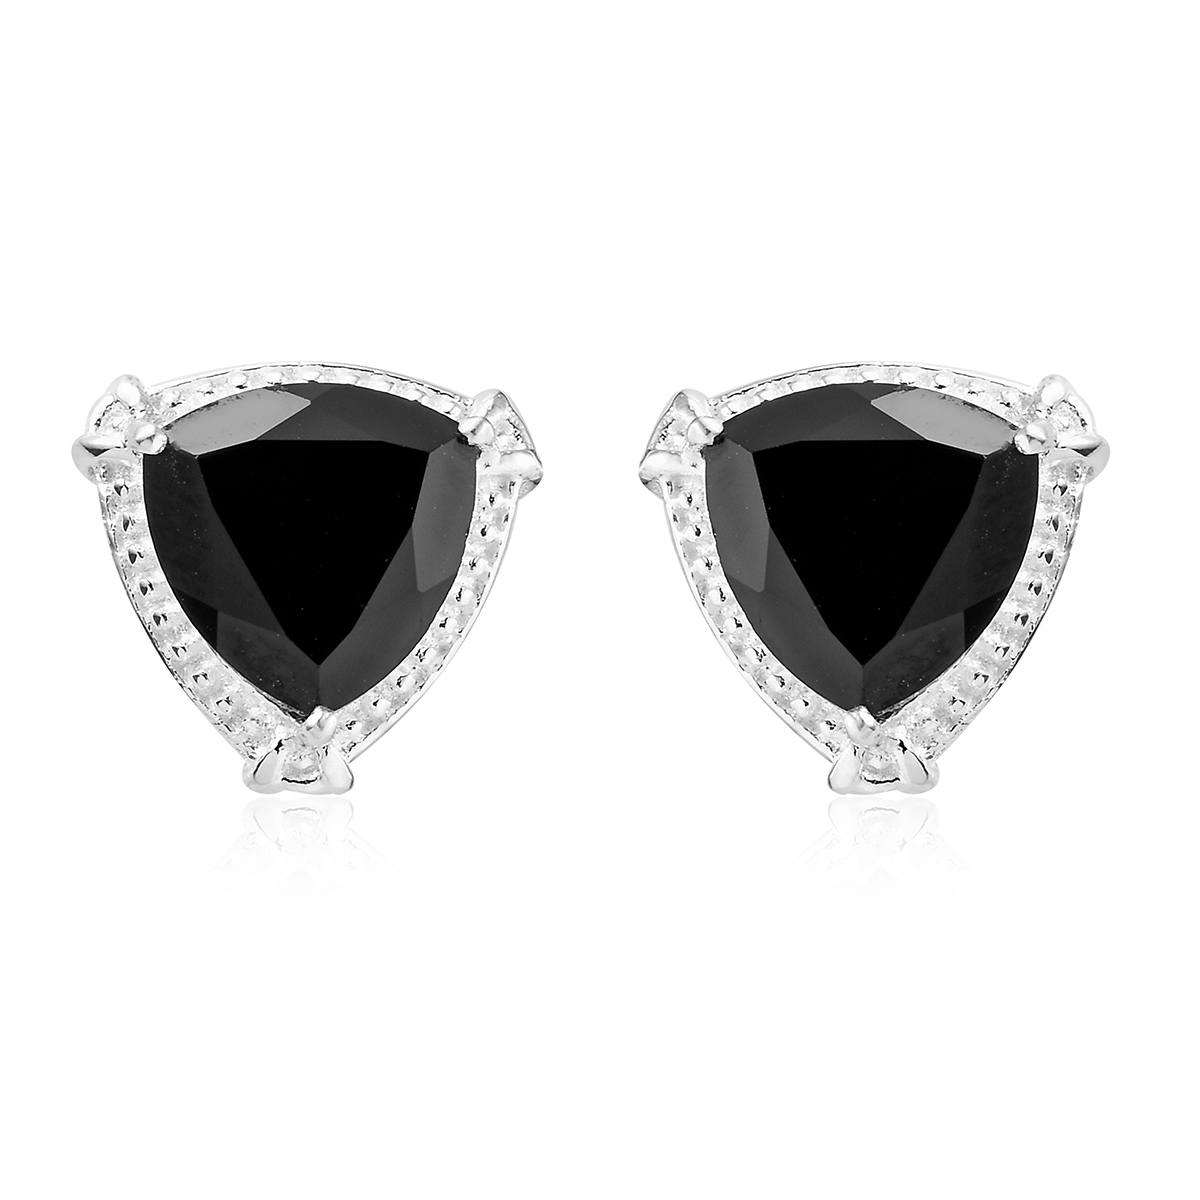 New 925 Sterling Silver Trillion Black Spinel Earring Cttw